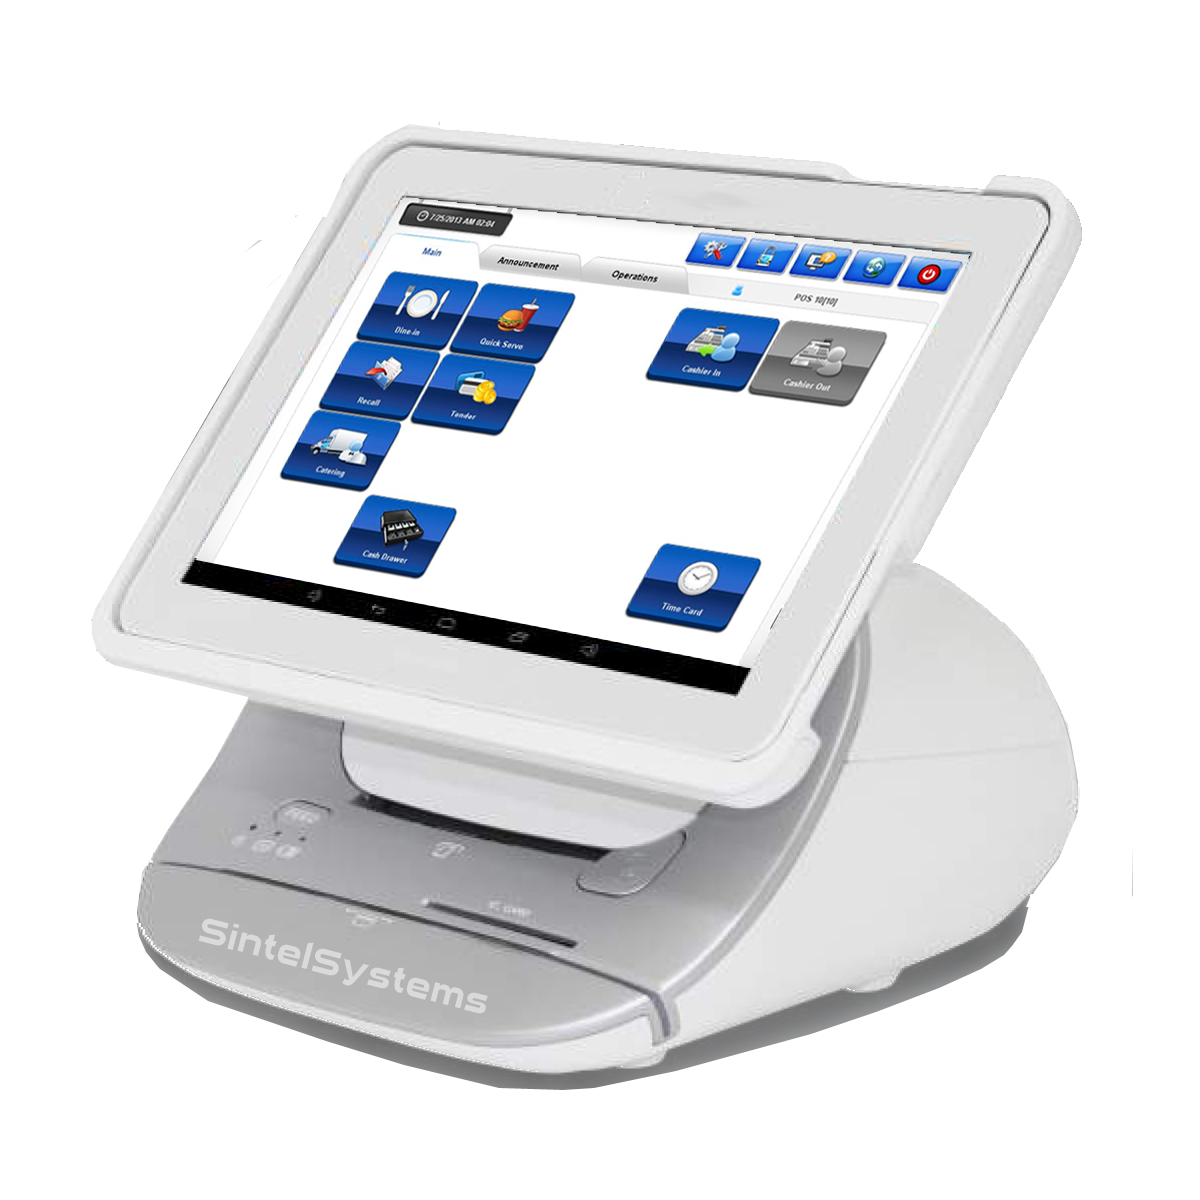 Best-Tablet-iPad-Restaurant-POS-Point-of-Sale-Sintel-Systems-855-POS-SALE-www.SintelSystemsPOS.com